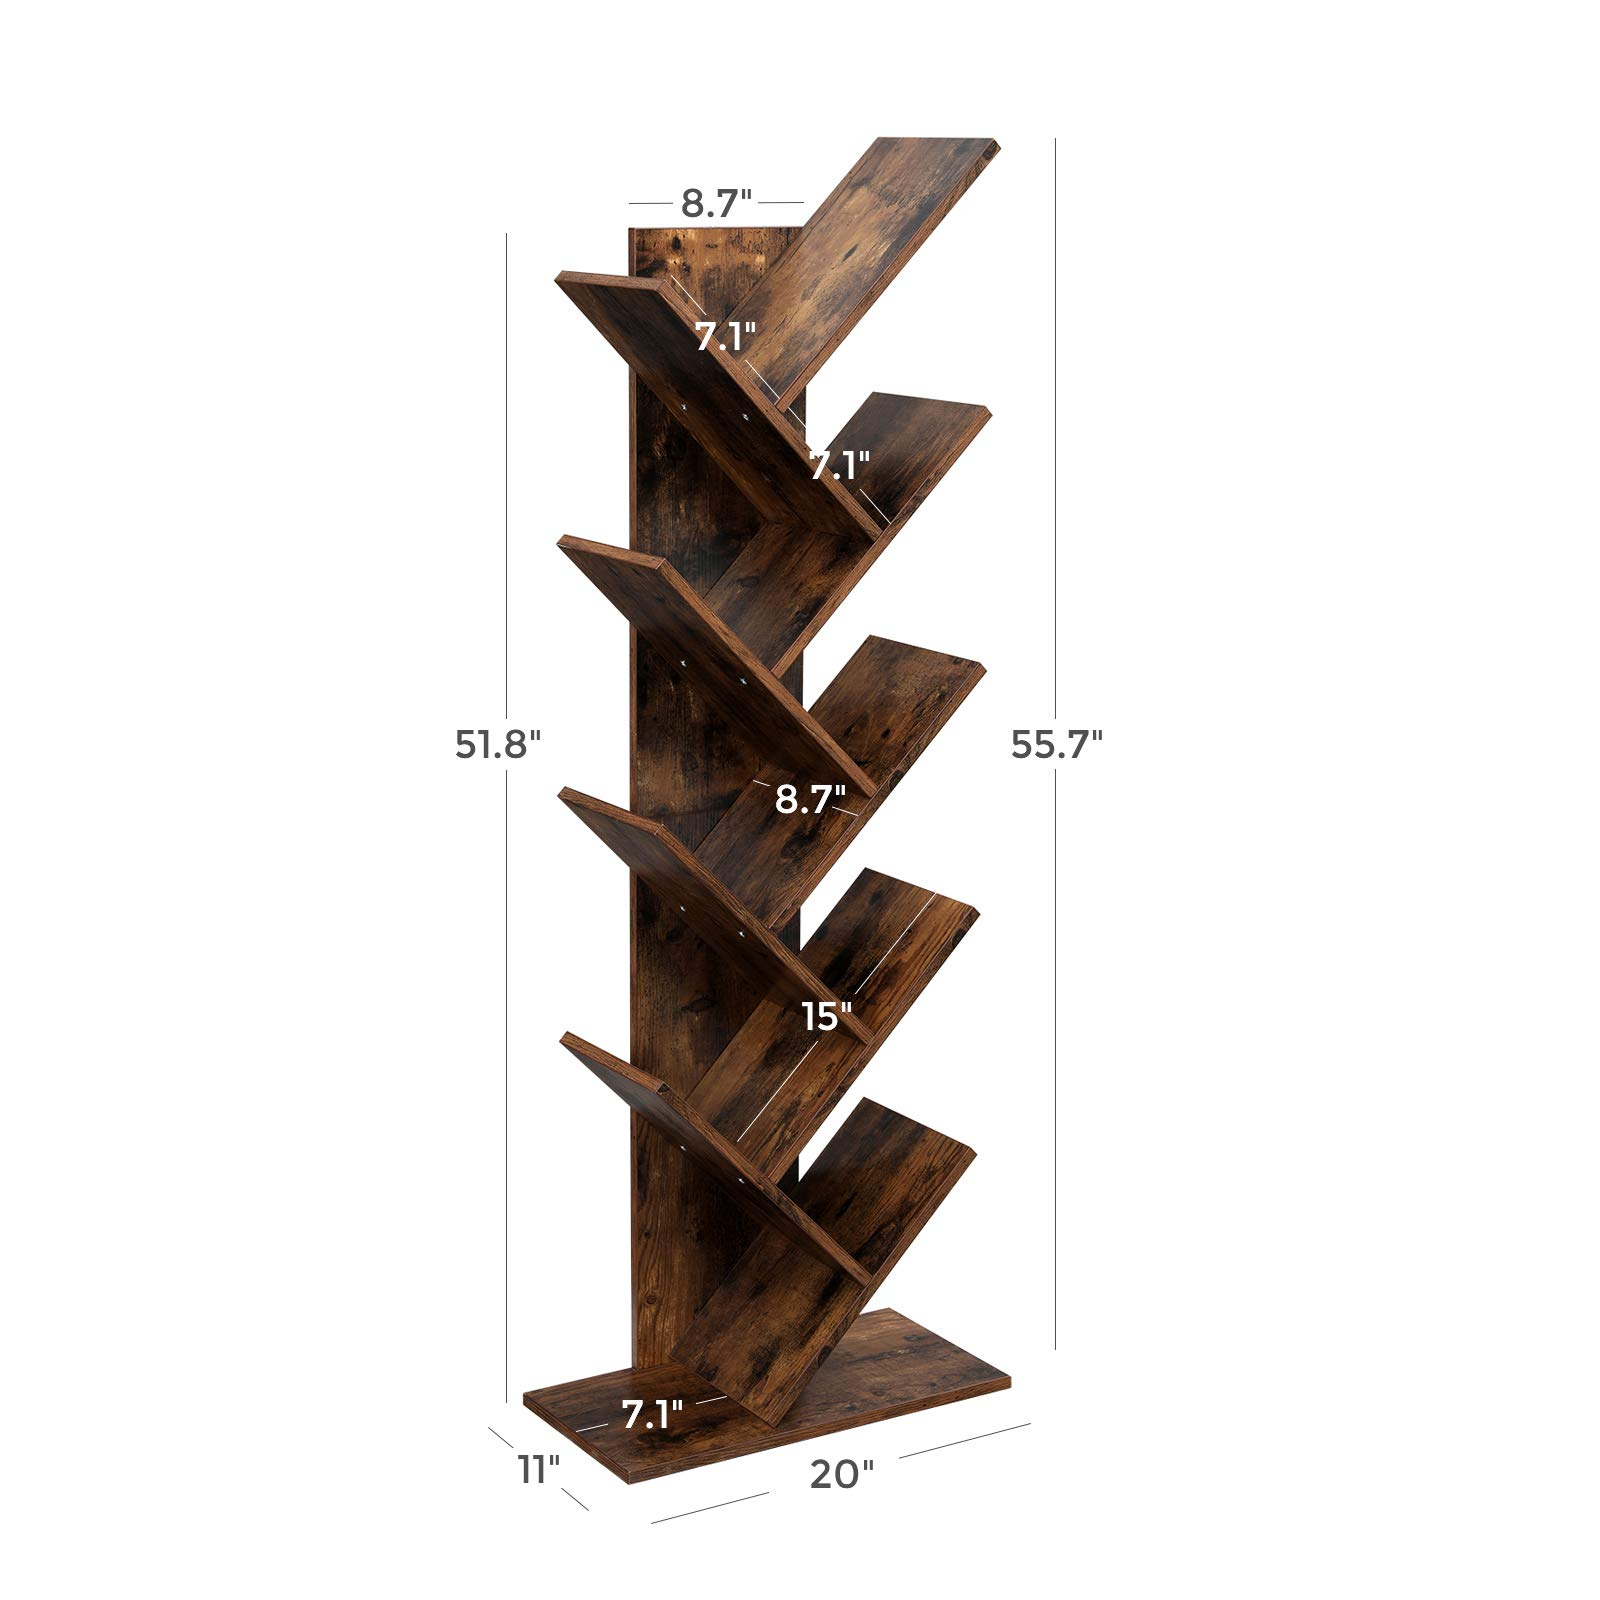 VASAGLE Tree Bookshelf, 8-Tier Floor Standing Bookcase, with Wooden Shelves for Living Room, Home Office, Rustic Brown ULBC11BX by VASAGLE (Image #6)